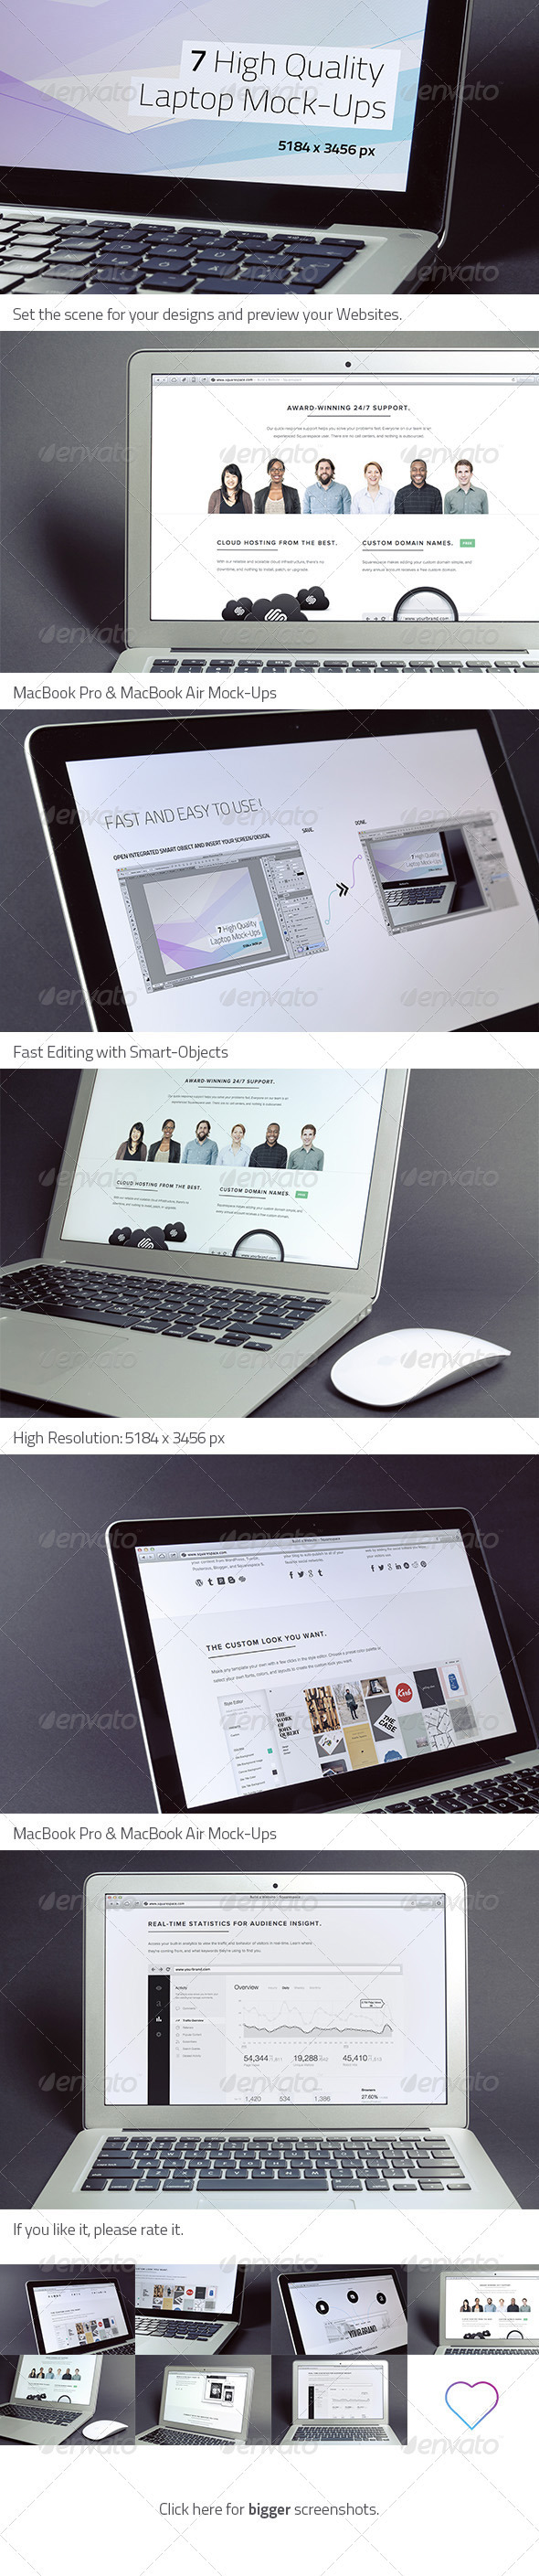 GraphicRiver 7 High Quality Laptop Mock-Ups 3962299